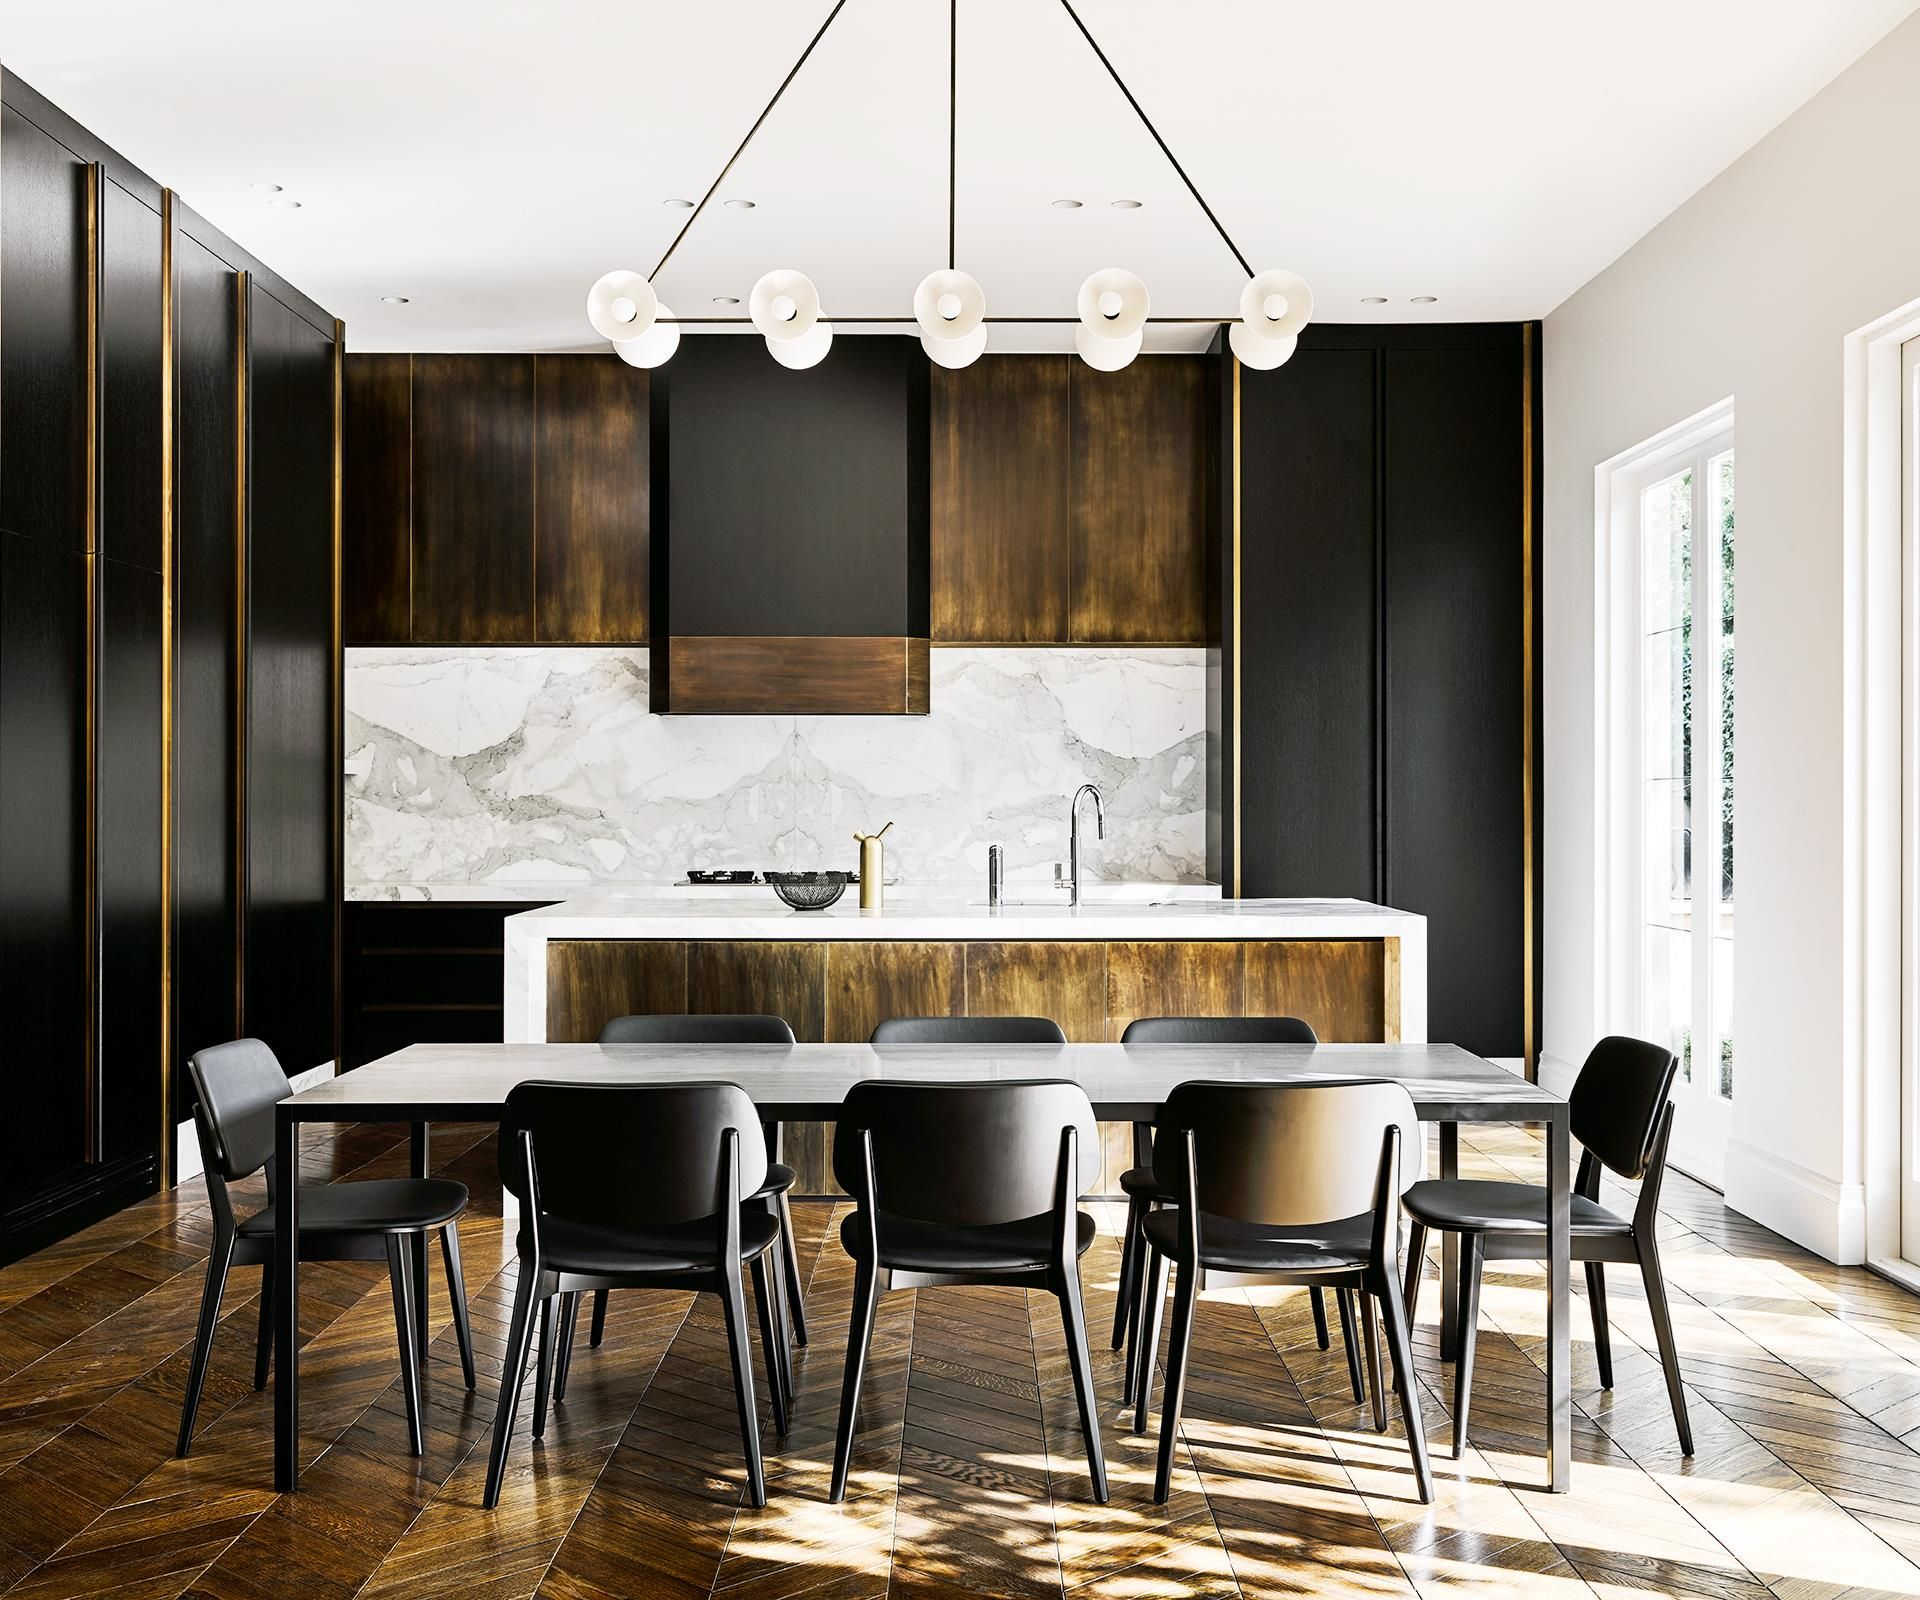 Removing the frills from this Melbourne duplex and adding some graphic contemporary features was the master stroke in its reinvention.